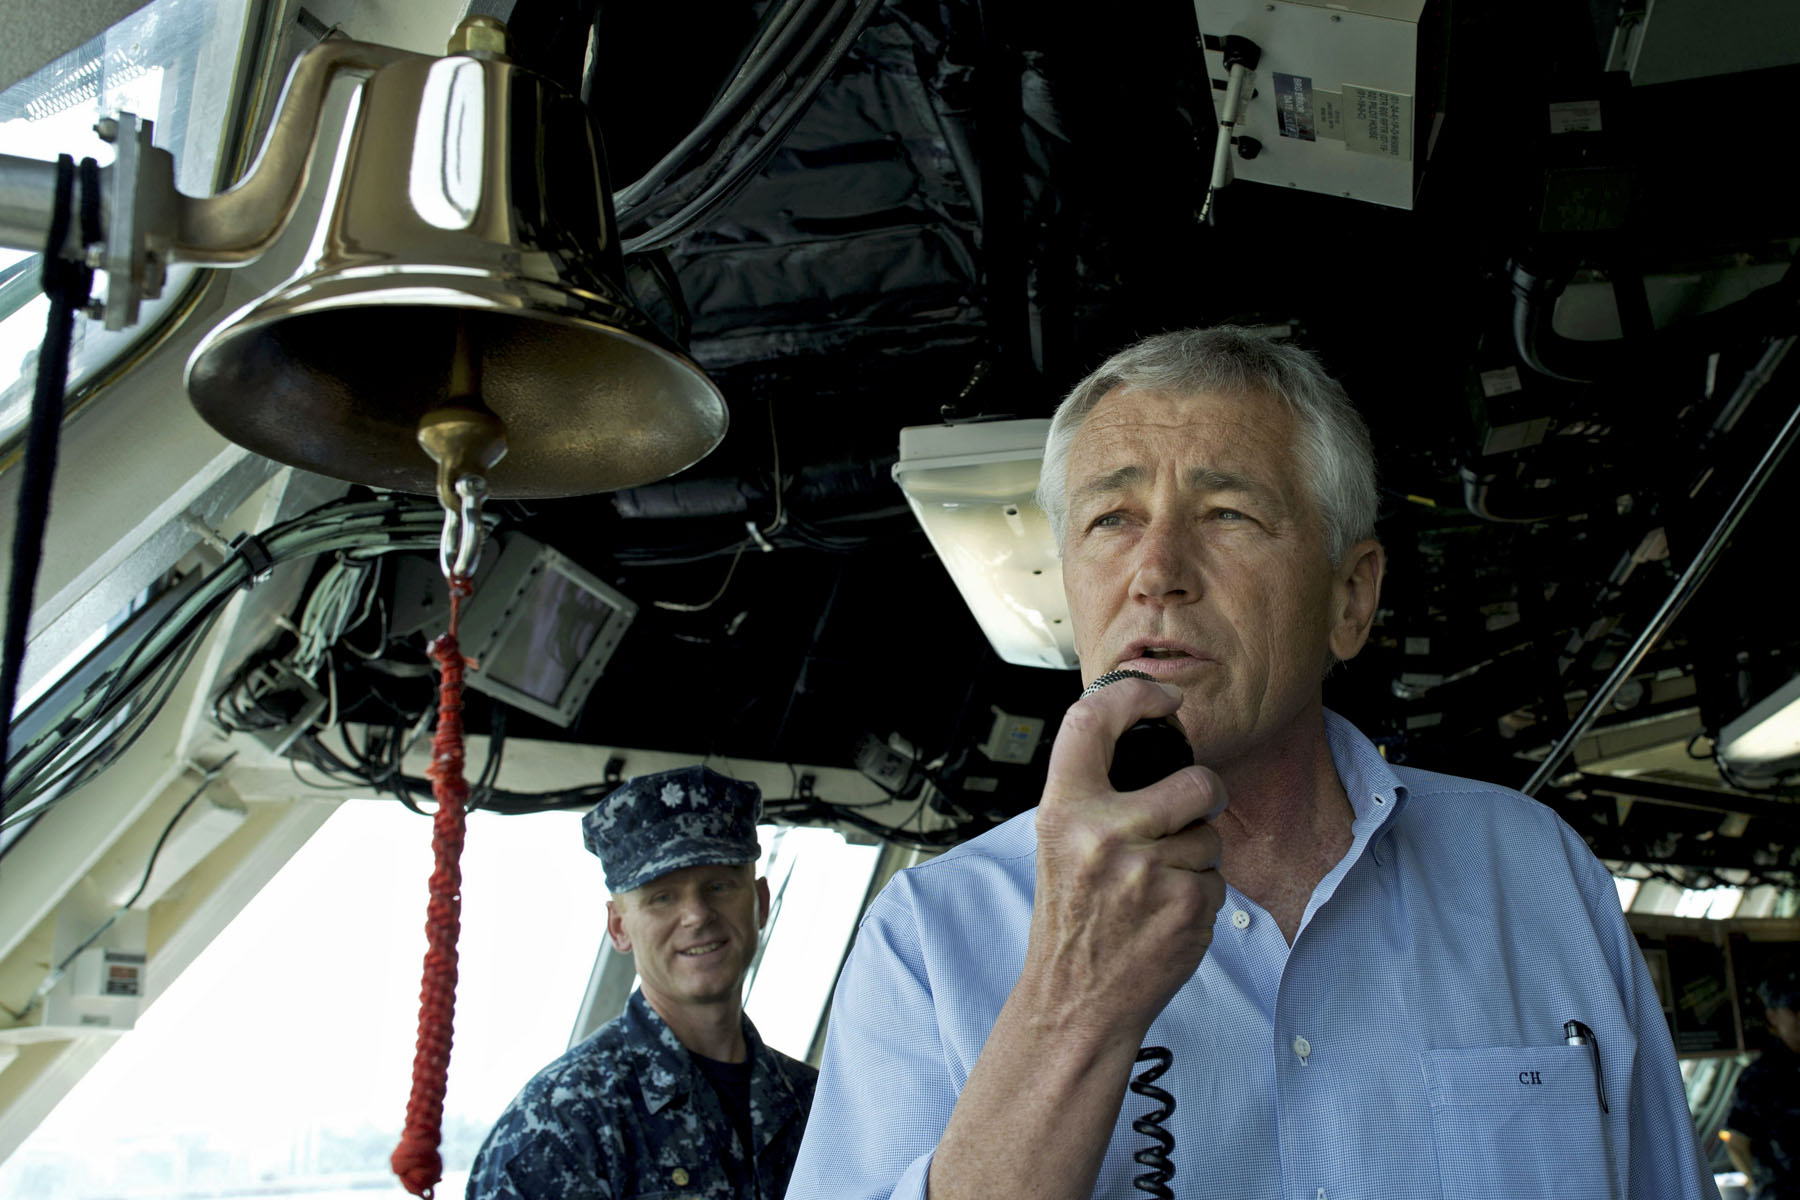 Secretary of Defense Chuck Hagel addresses the crew of the littoral combat ship USS Freedom (LCS-1) in Singapore on June 2, 2013. US Navy Photo